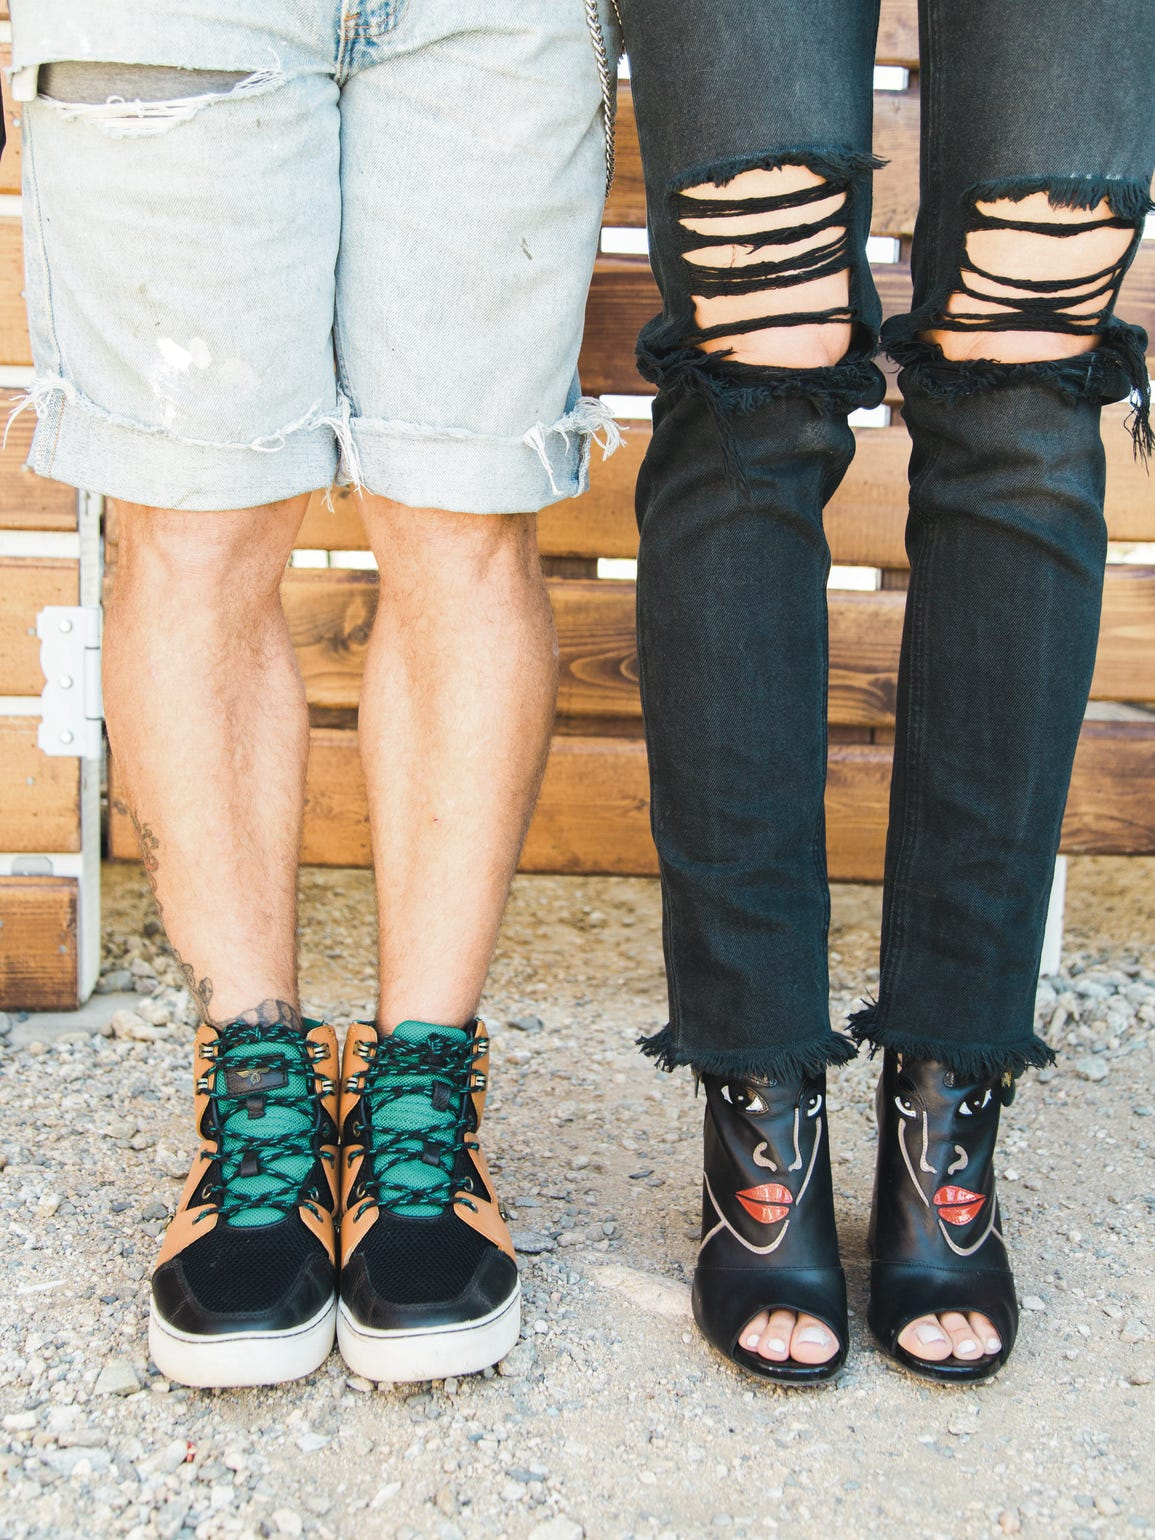 On Nikko (right): Creative Recreation shoes. On Tienlyn